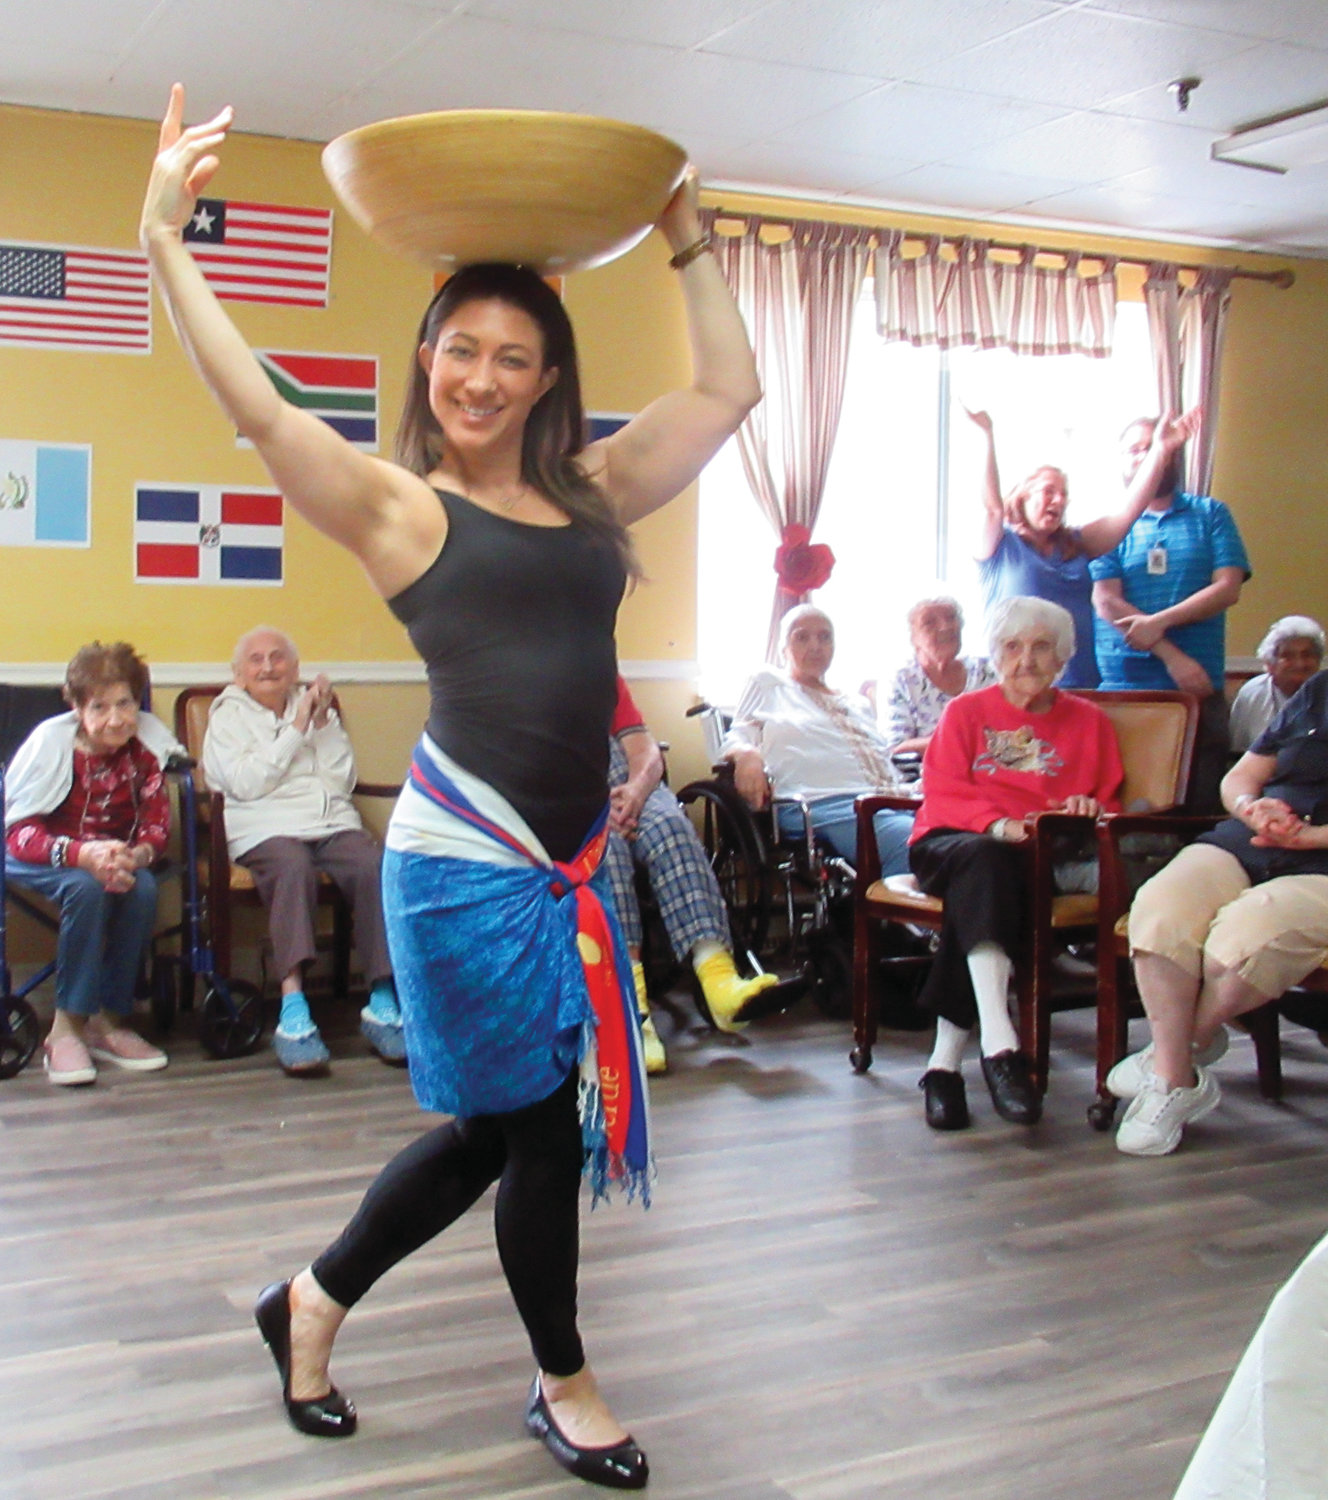 DYNAMIC DANCER: Kim Fontes, a physical therapist, finished first in the recent Briarcliffe Manor Latin Dance Off.